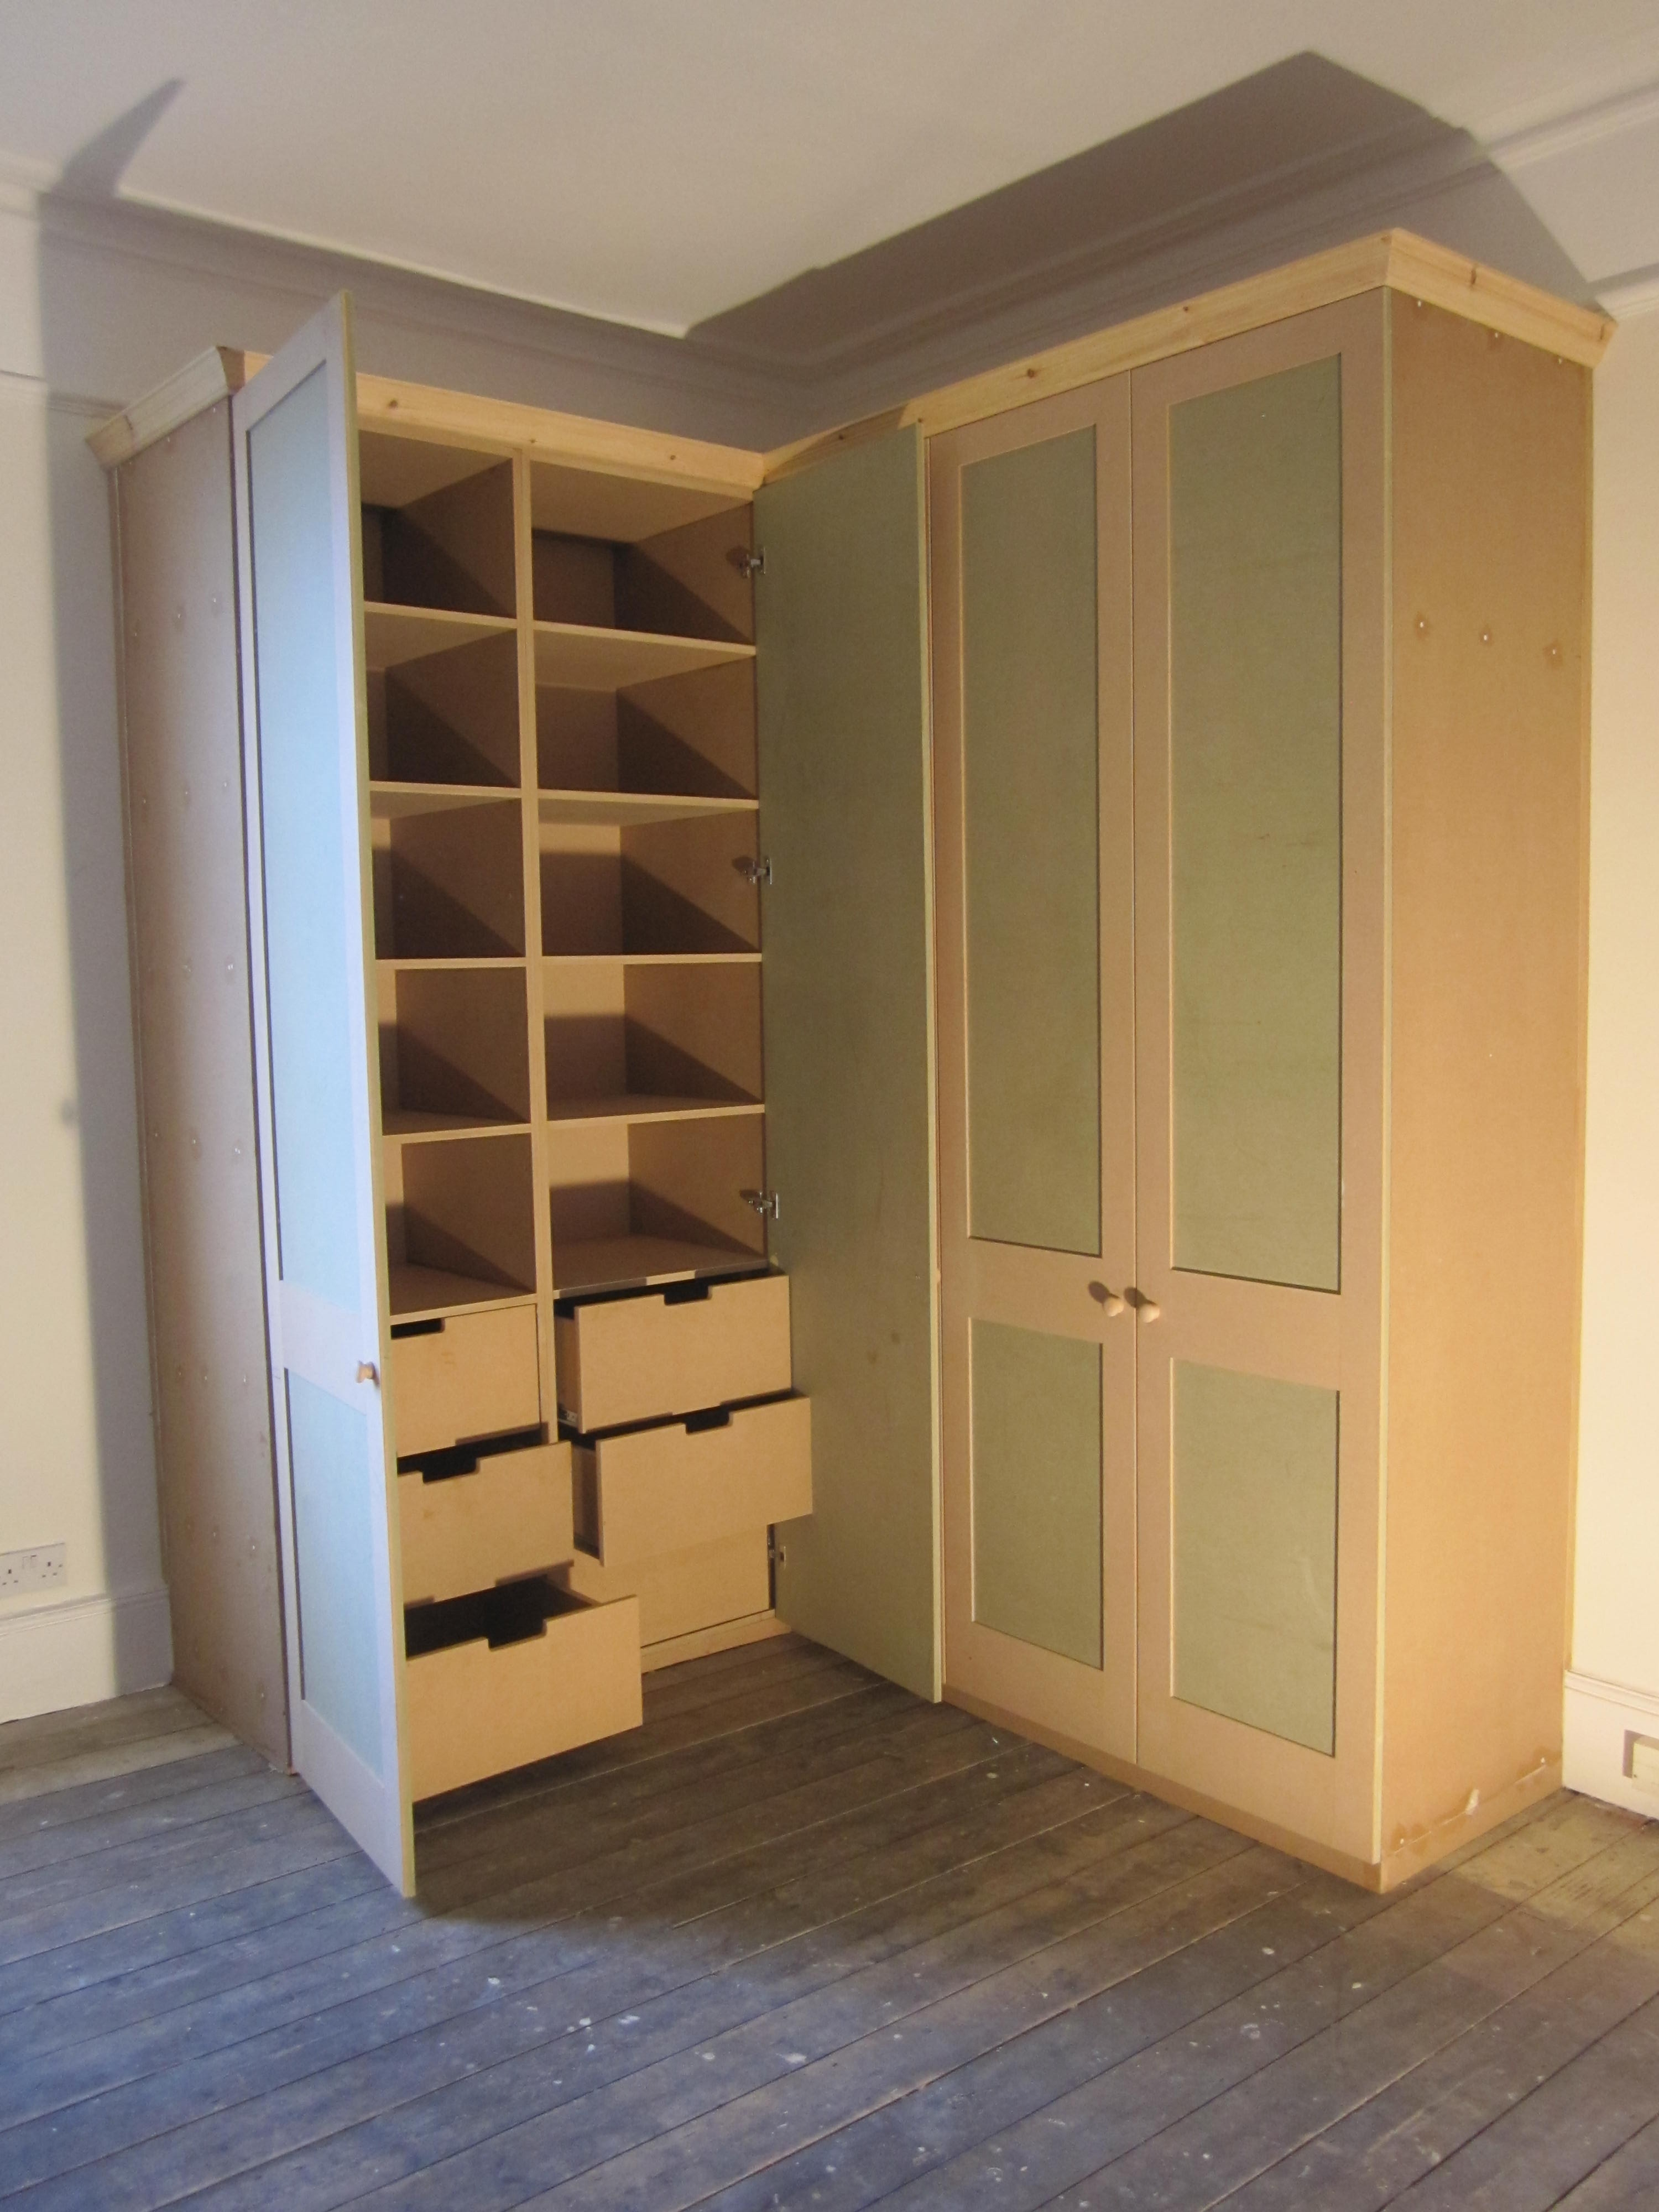 For Idea Of Drawer Shape Only Closets Pinterest Drawers And With Regard To Wardrobe With Shelves And Drawers (View 8 of 15)